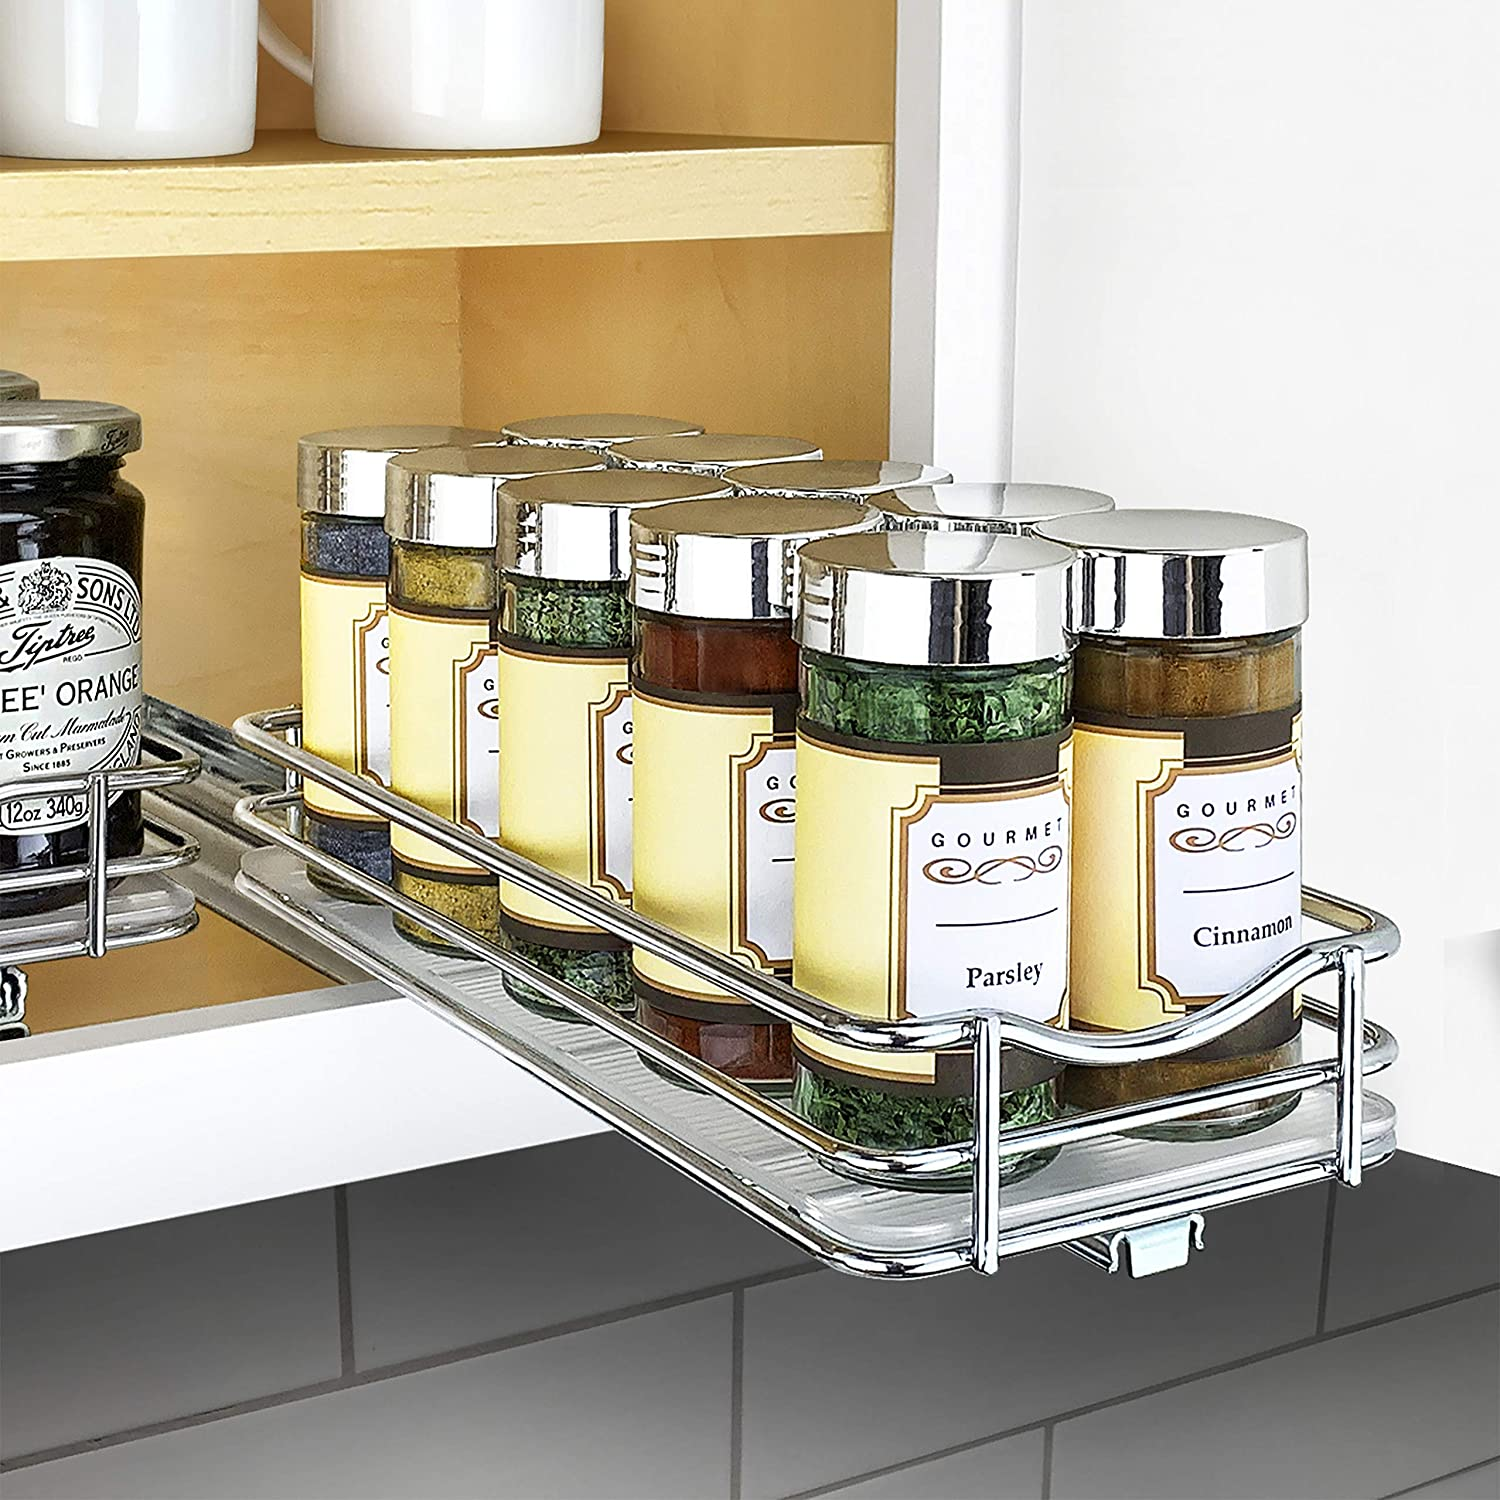 Amazon Com Lynk Professional Slide Out Spice Rack Upper Cabinet